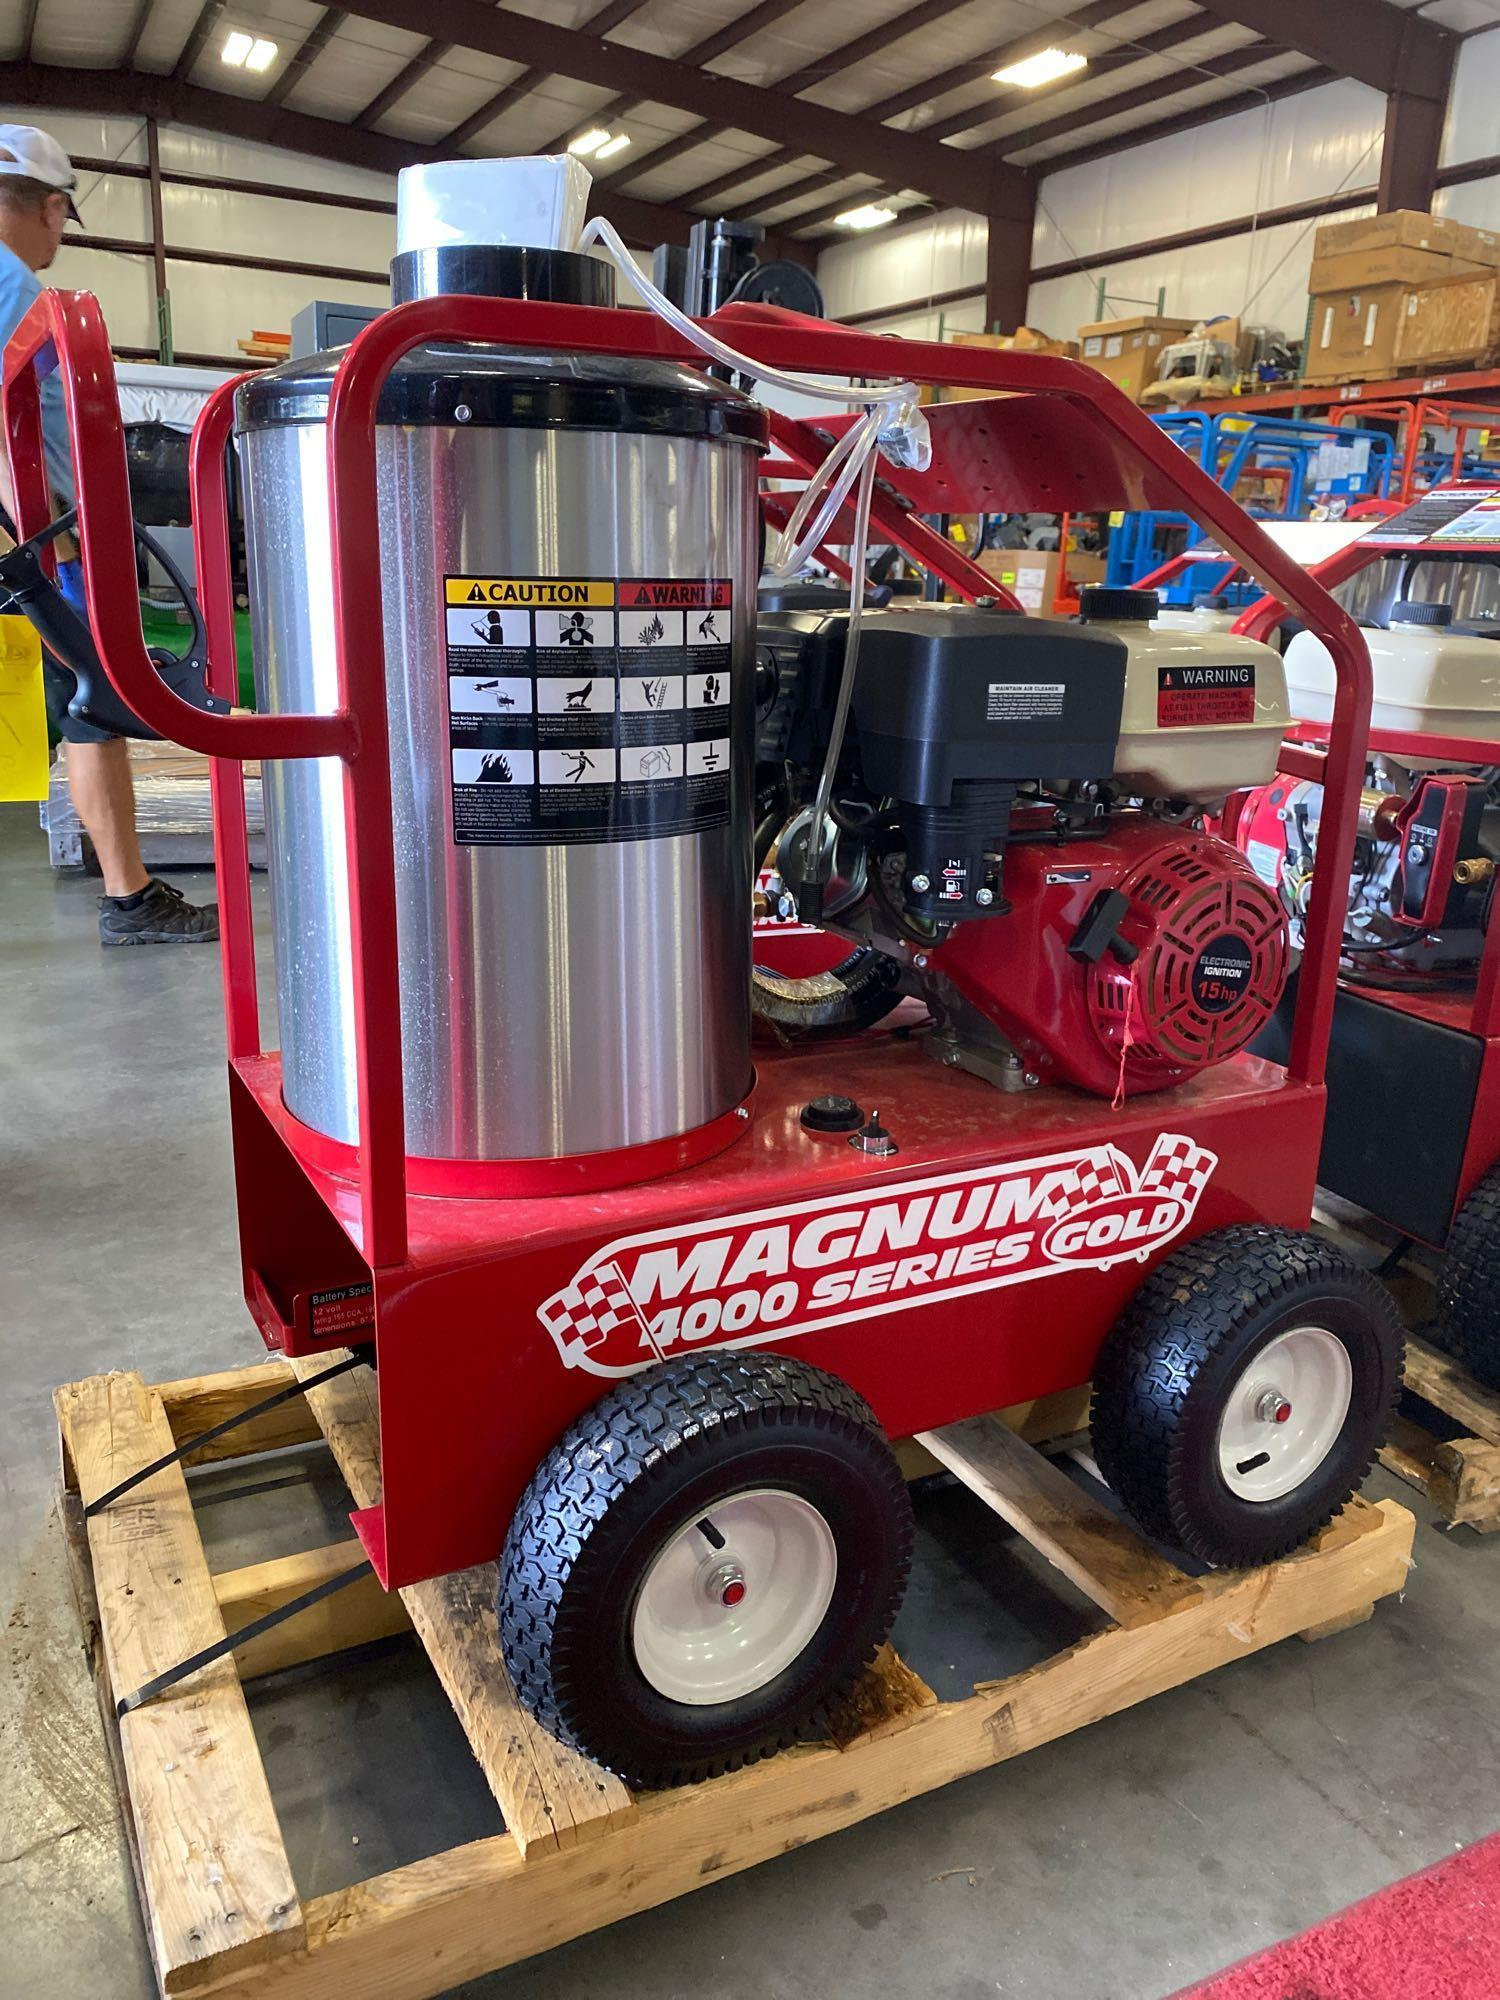 NEW/UNUSED 2020 MAGNUM 4000 HEATED PRESSURE WASHER, ELECTRIC START - Image 4 of 5